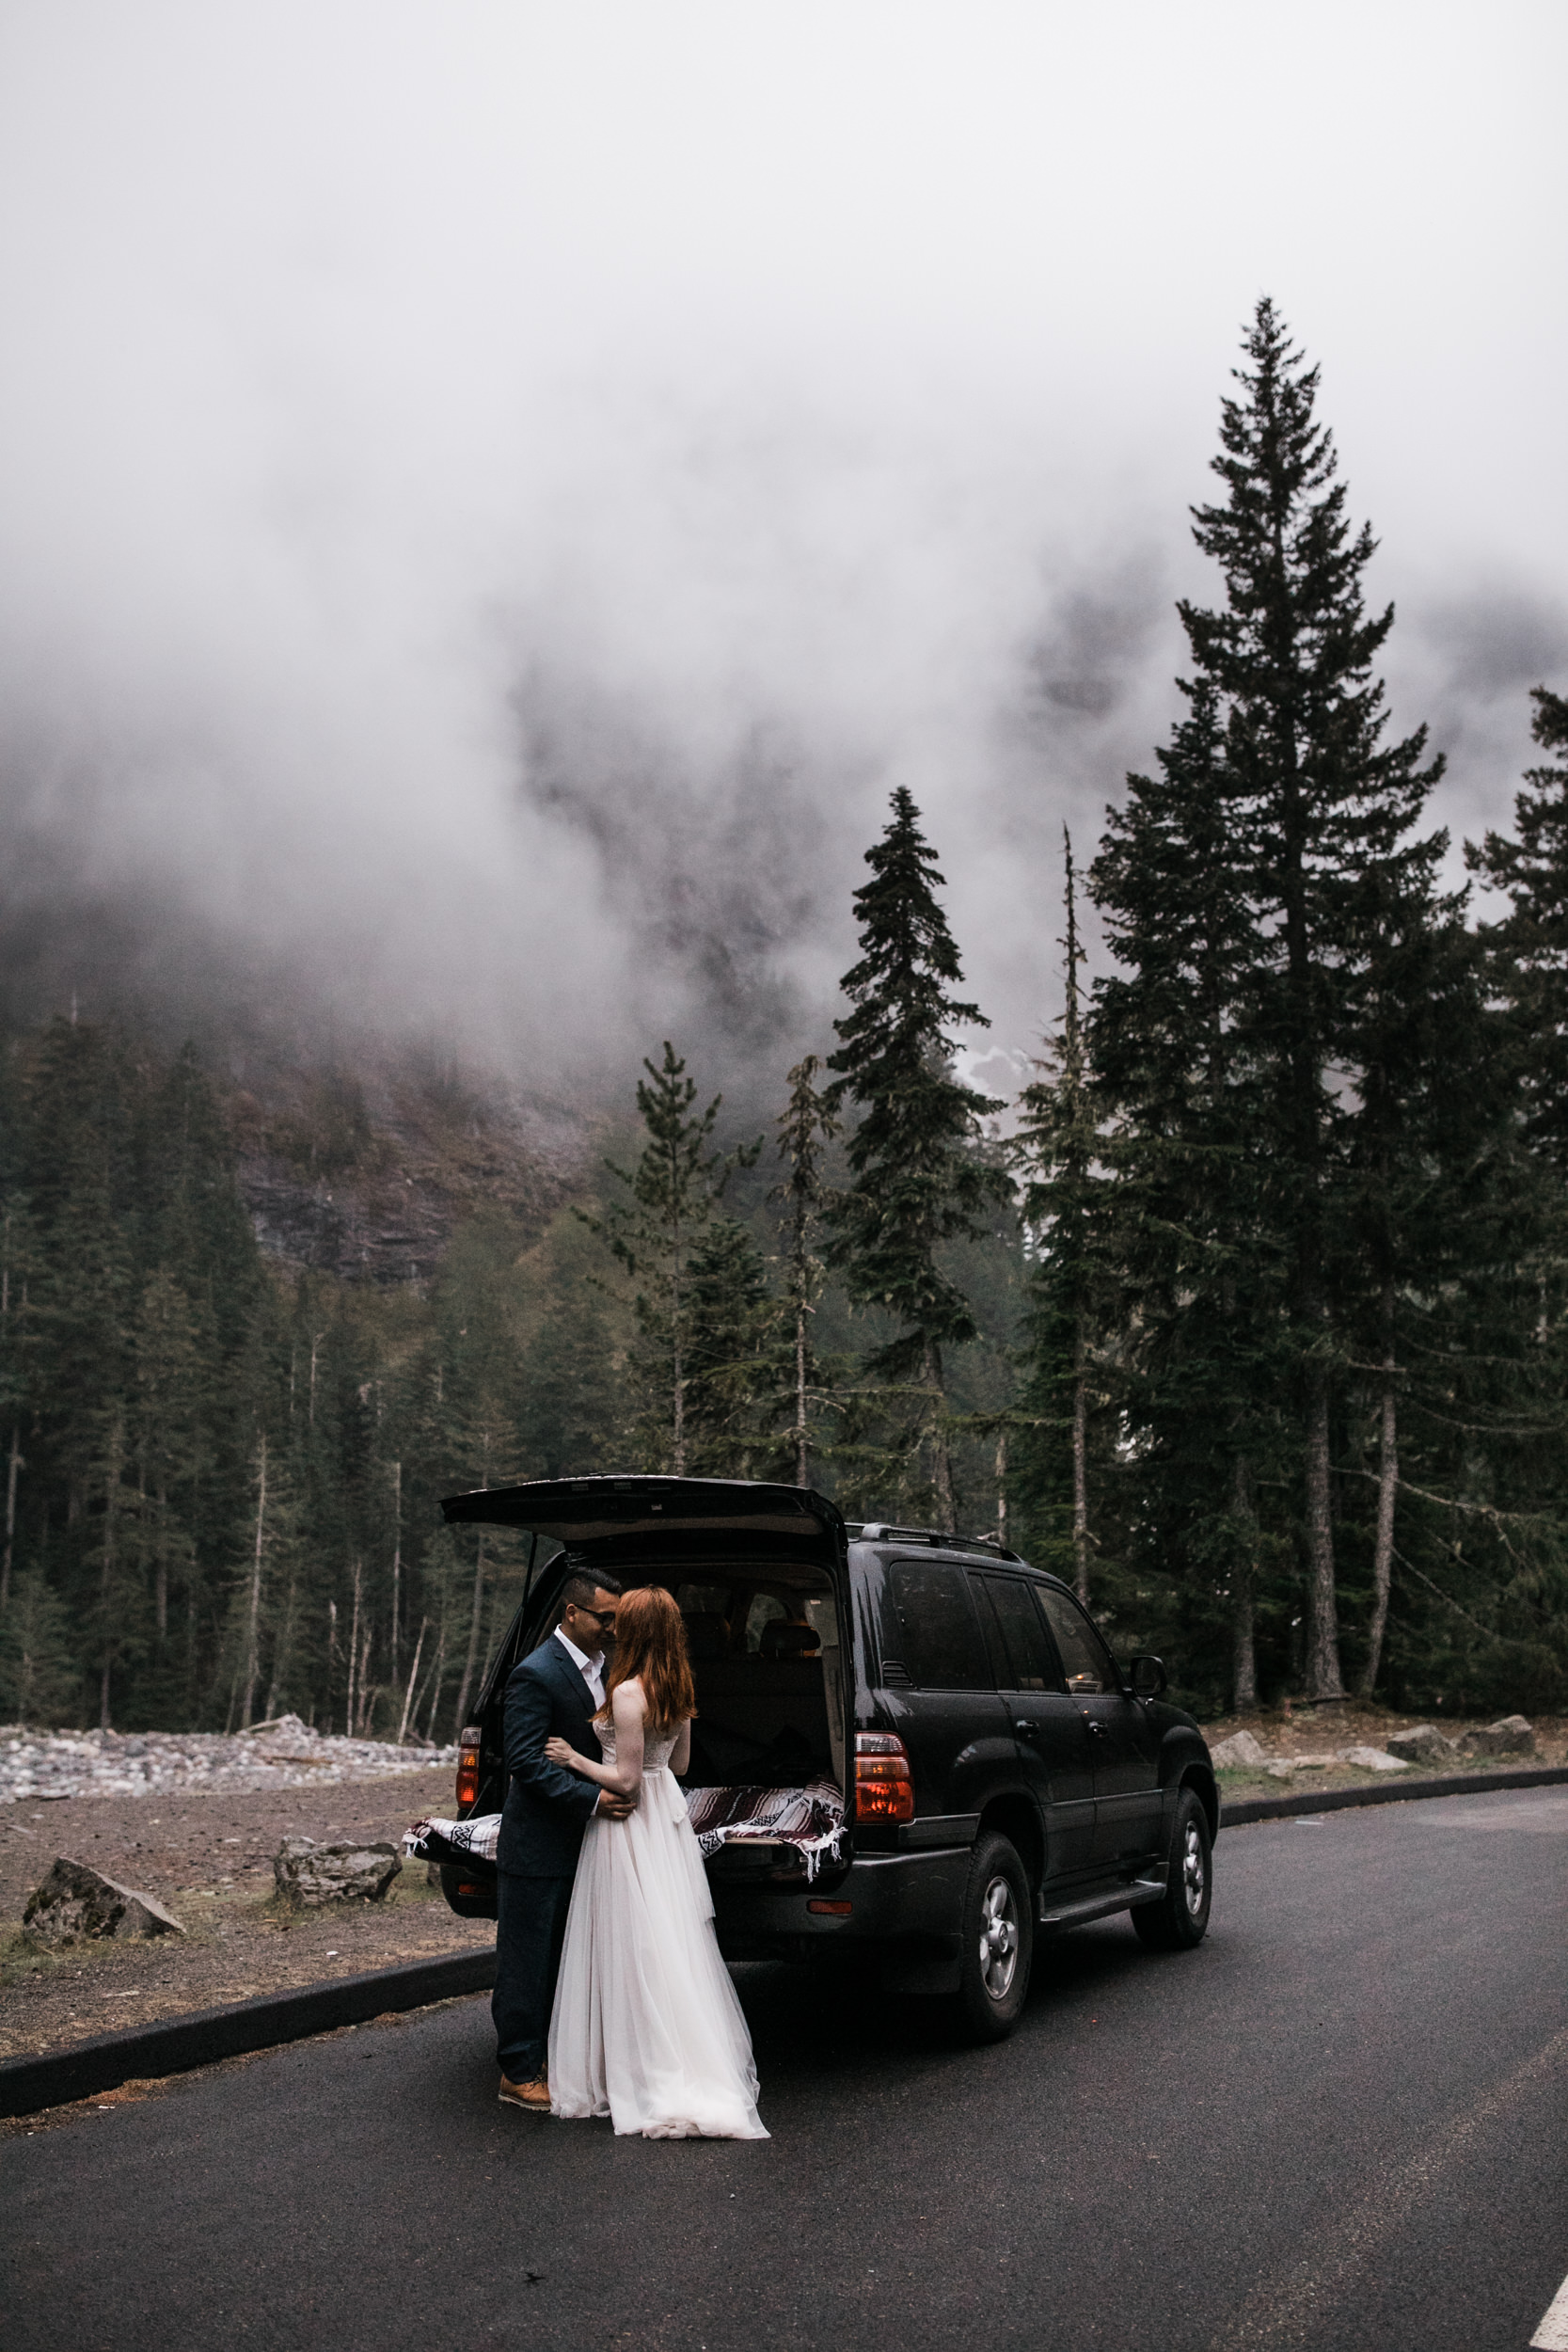 alyssa + horacio's adventurous honeymoon session in mount rainier national park | the hearnes adventure photography | national park elopement inspiration | www.thehearnes.com